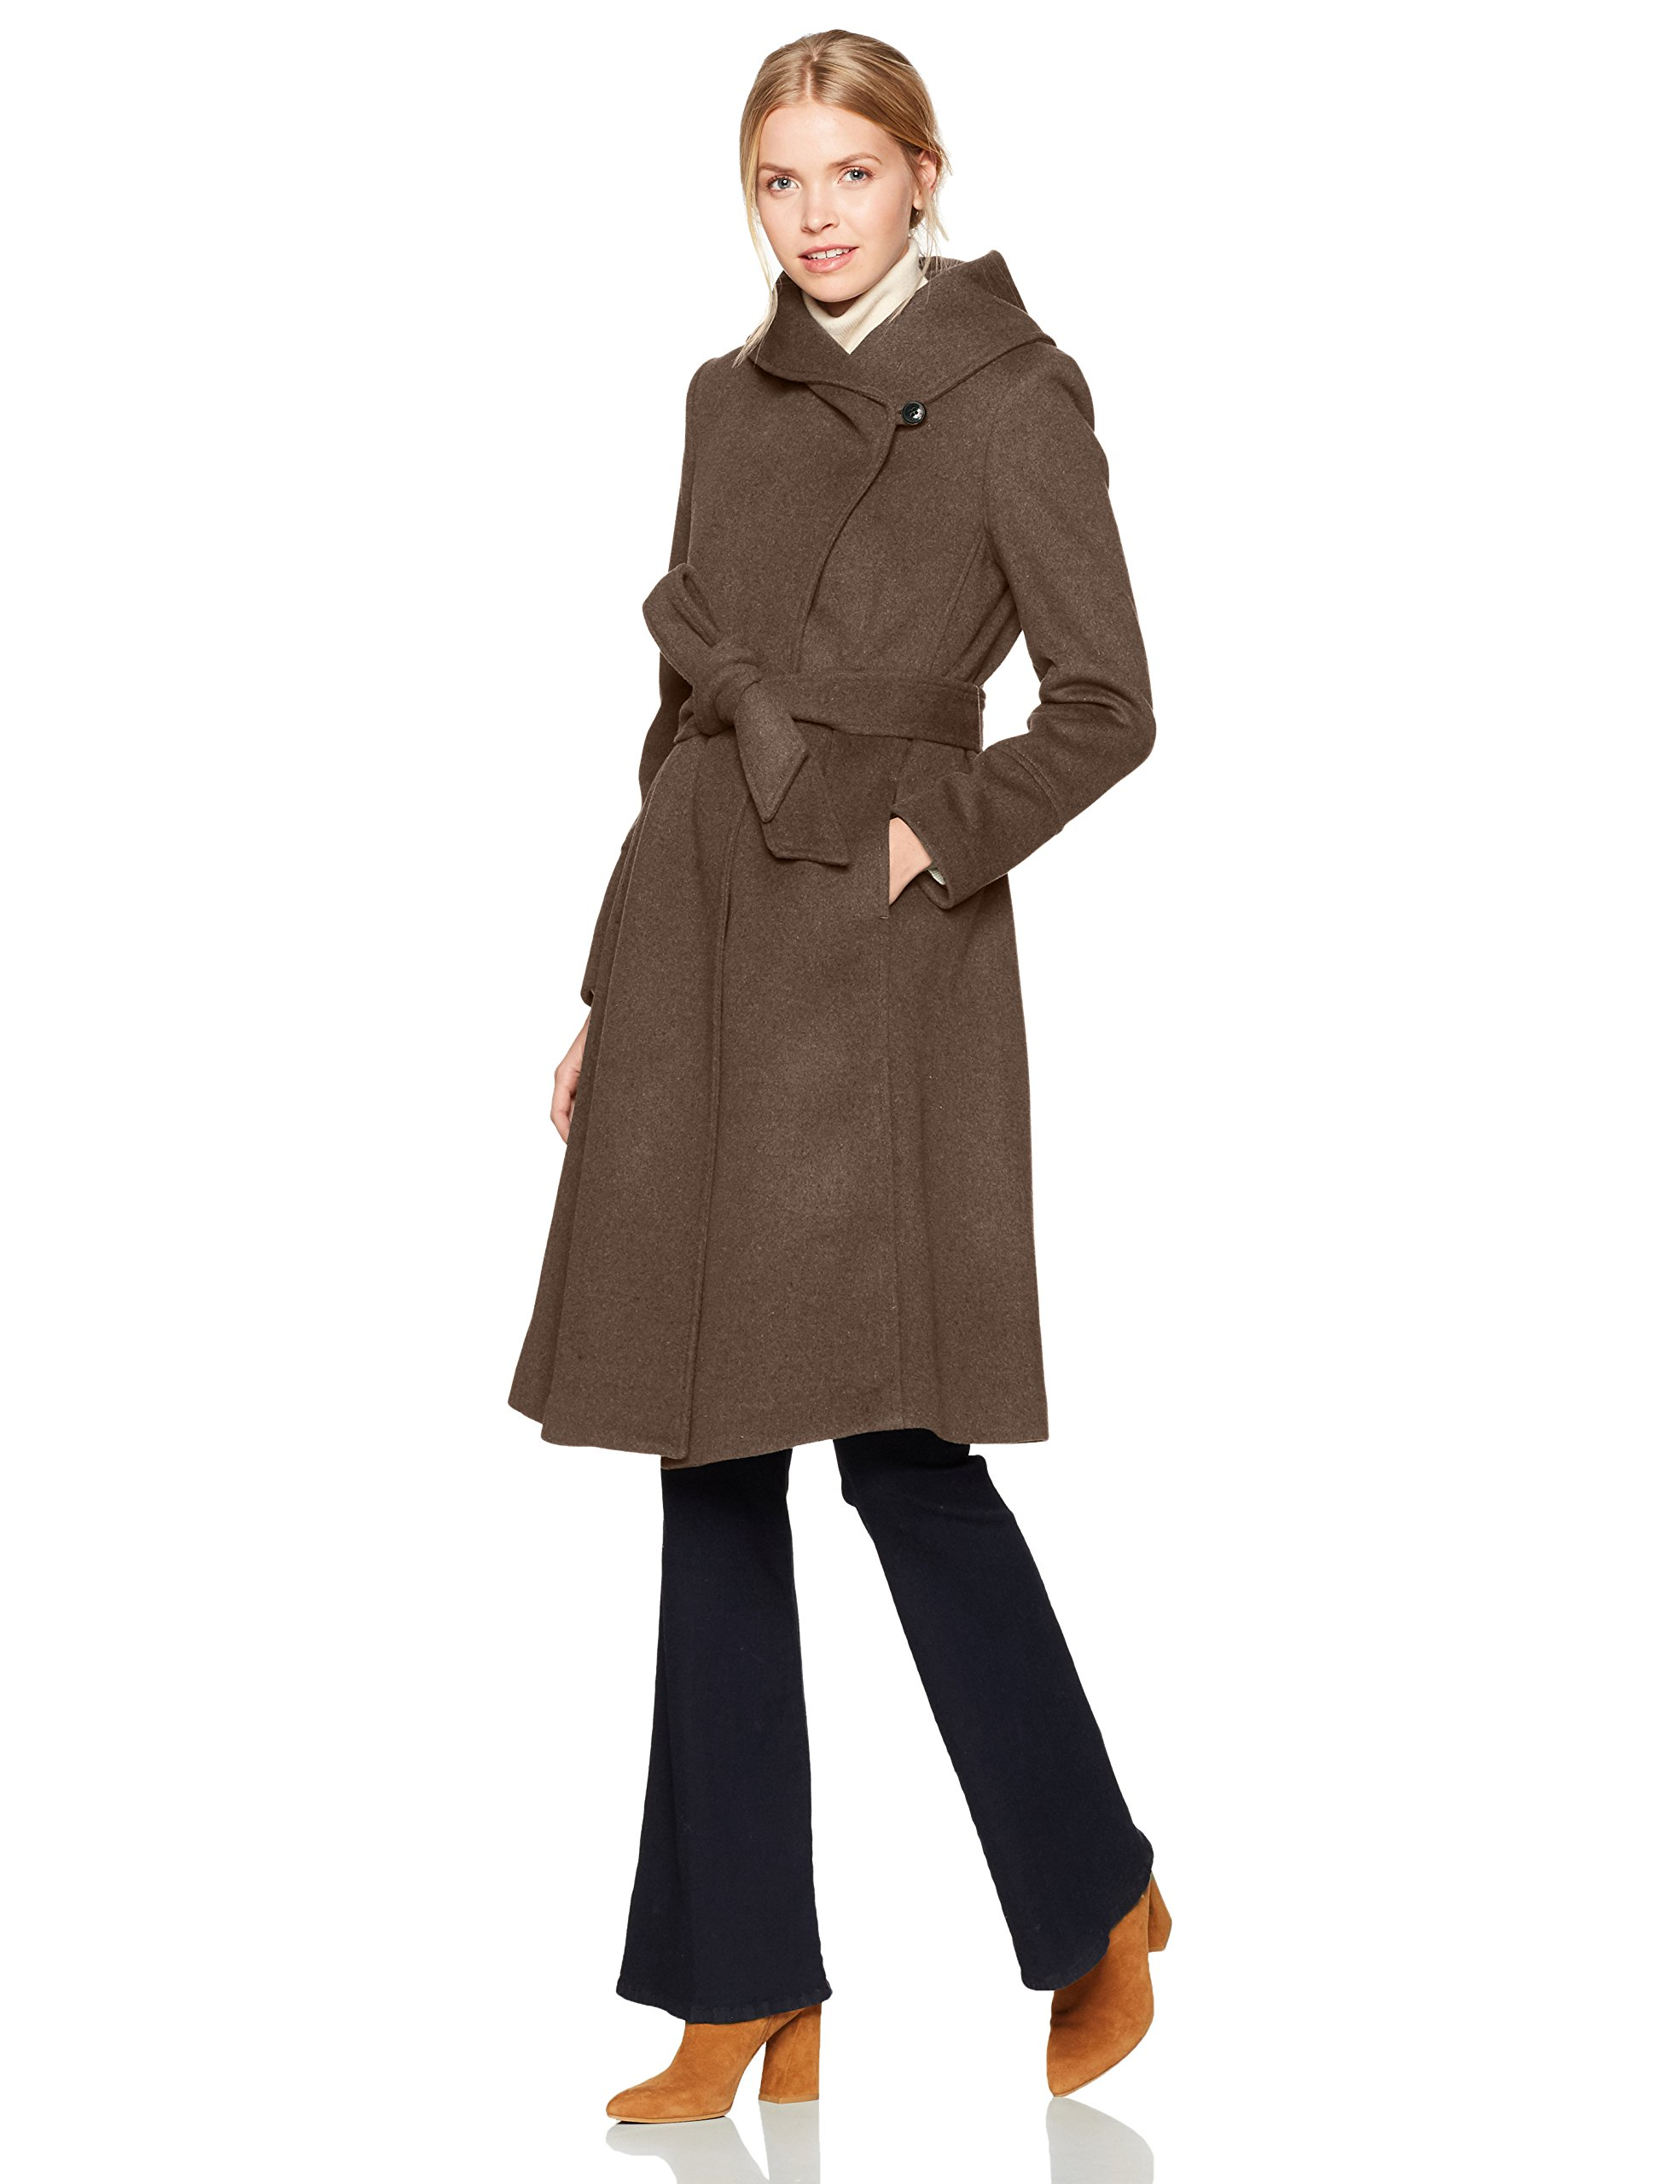 Cole Haan Women's Luxury Wool Asymmetrical Coat With Oversized Shawl Collar, Brown, 4